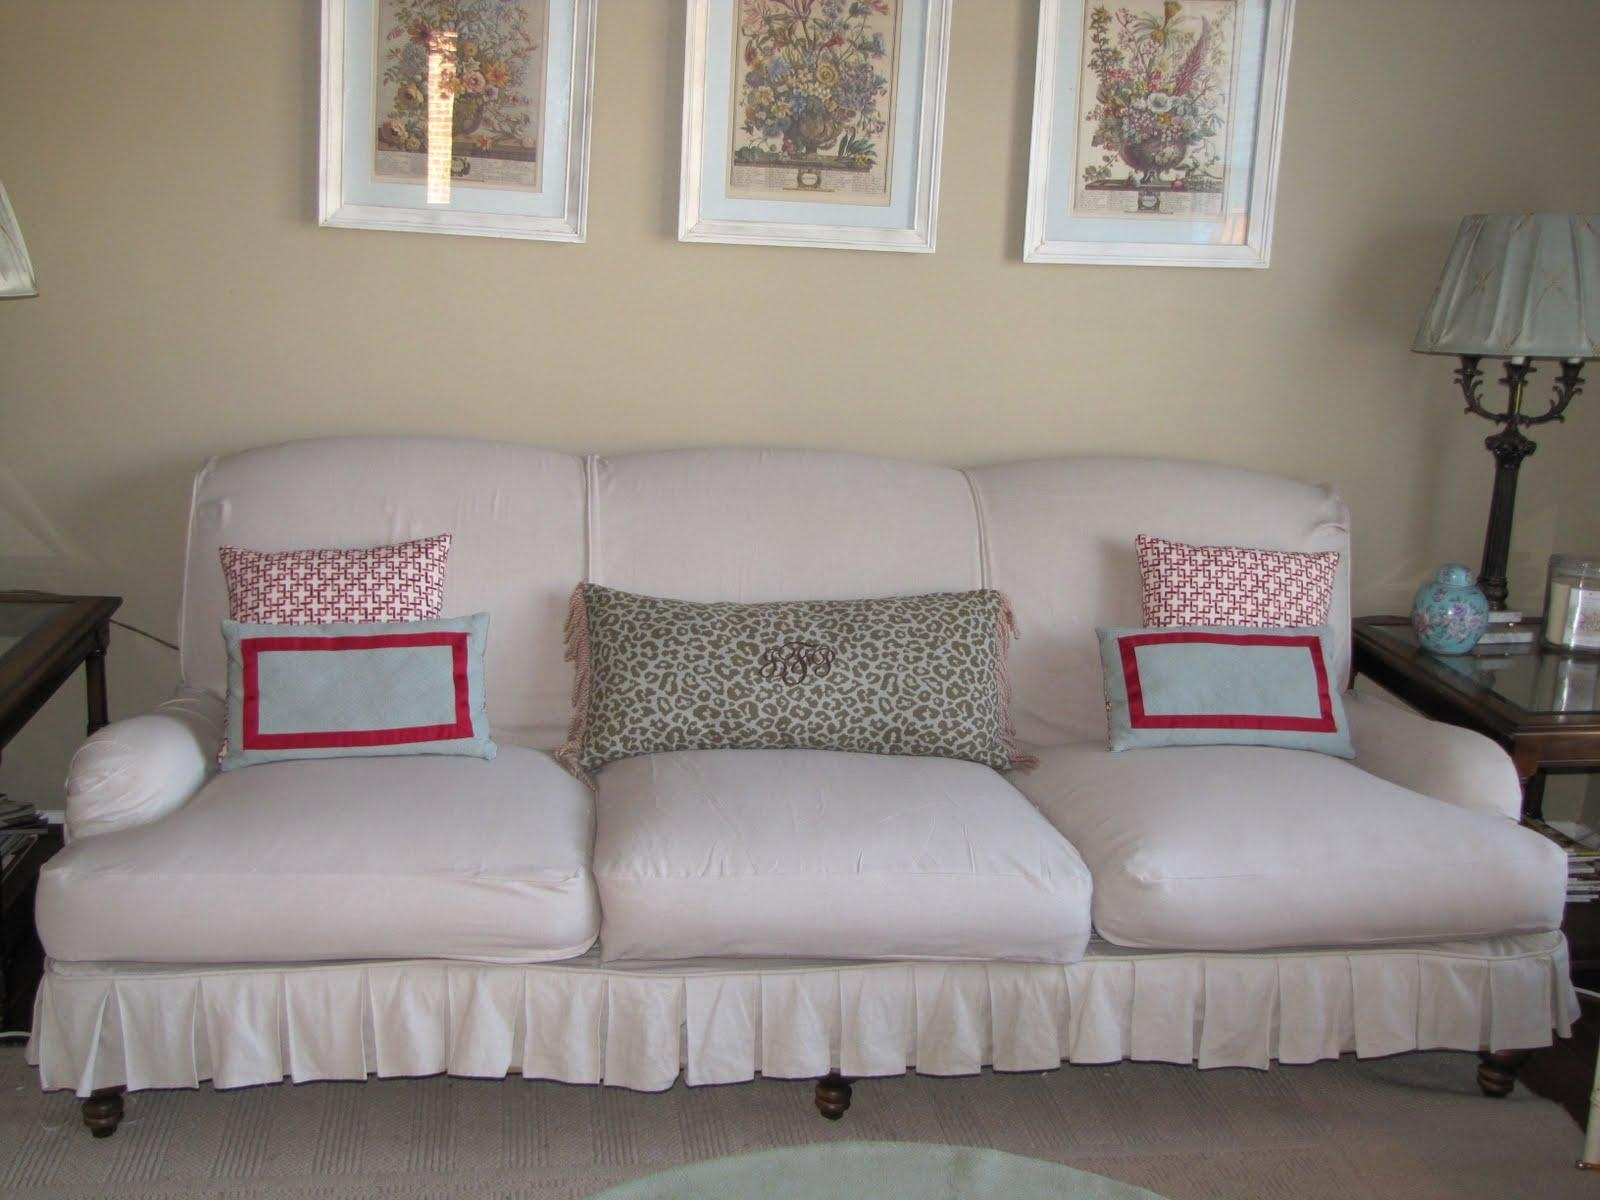 Bibbidi Bobbidi Beautiful: How To Slipcover Sofas And Chairs Within Slipcovers For Chairs And Sofas (View 19 of 20)